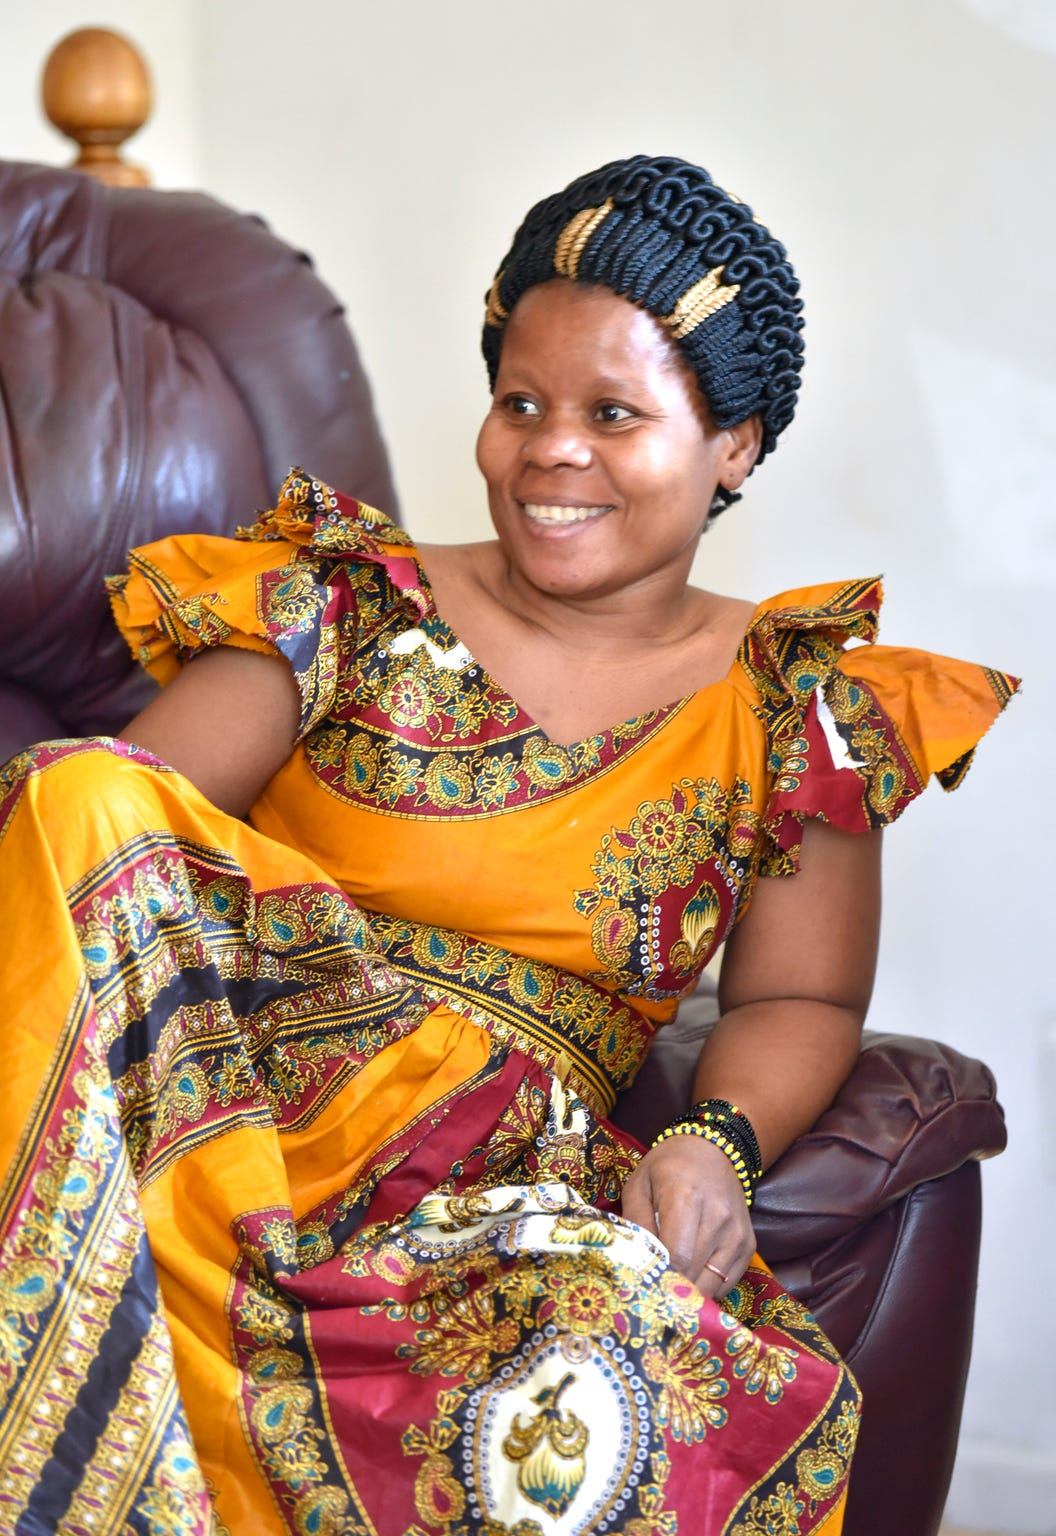 Asende smiles during the interview as she wears a traditional African dress sewn by her husband.